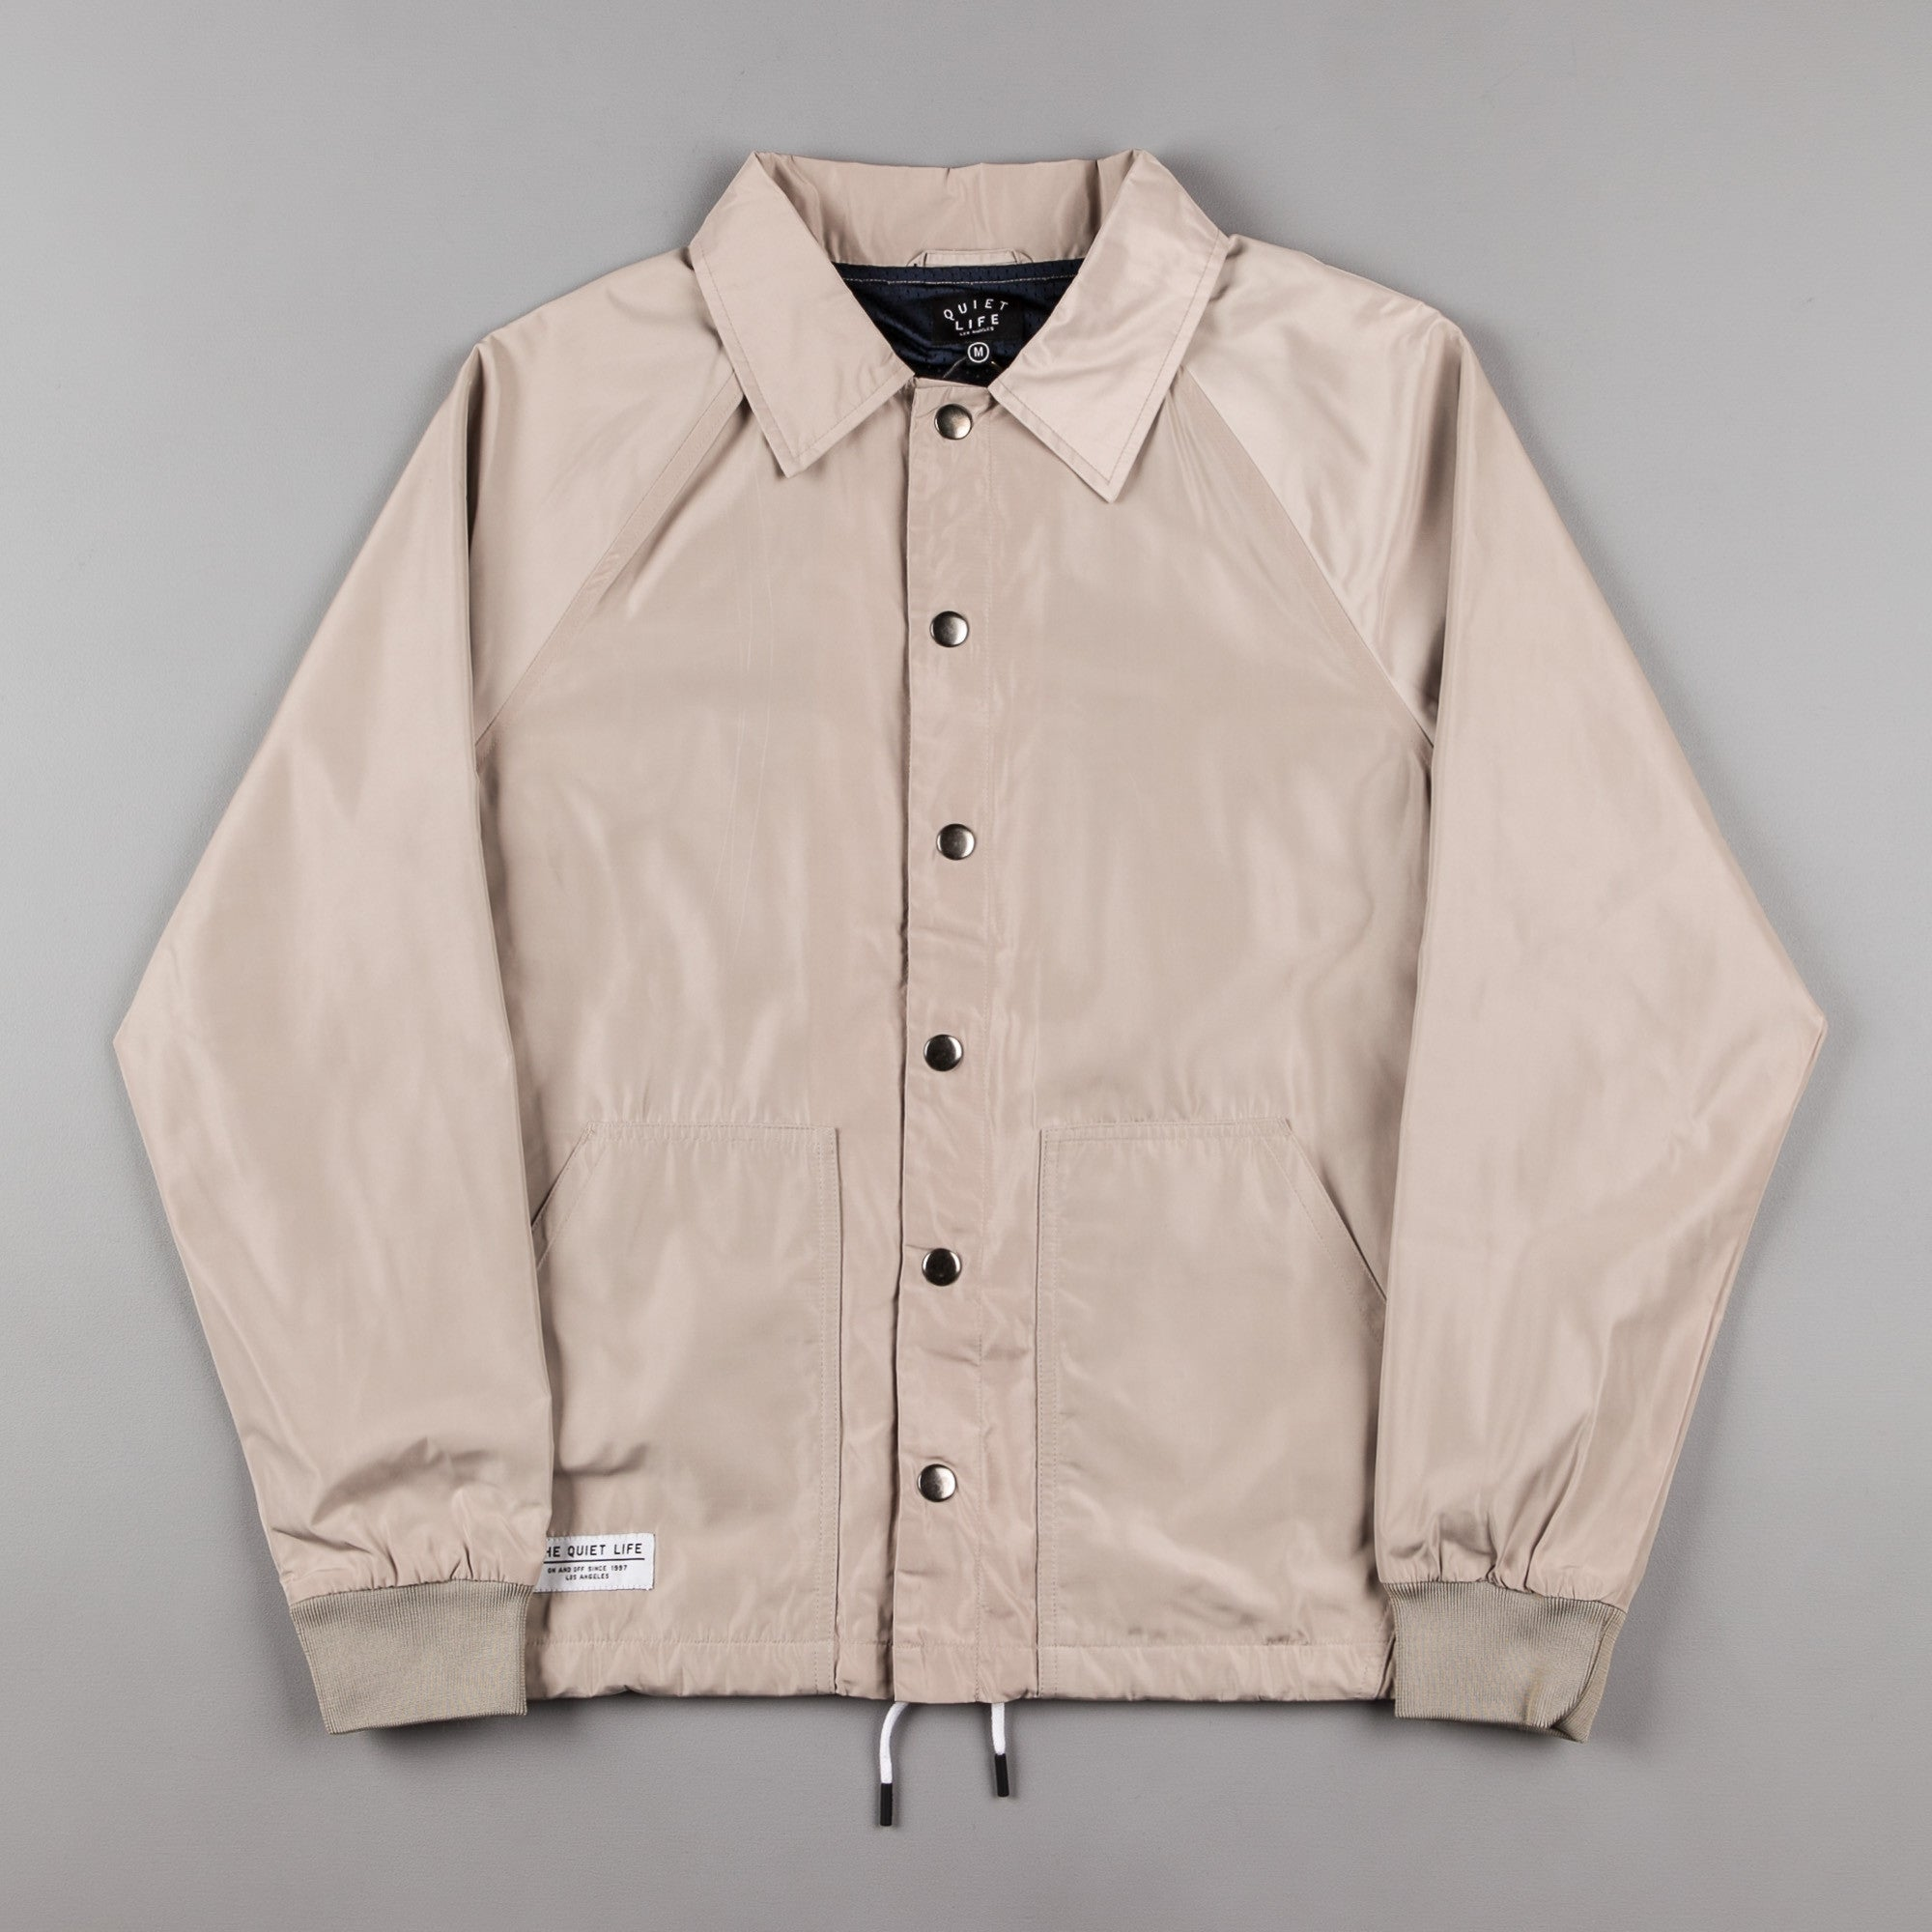 The Quiet Life Mesh Lined Garage Jacket - Tan